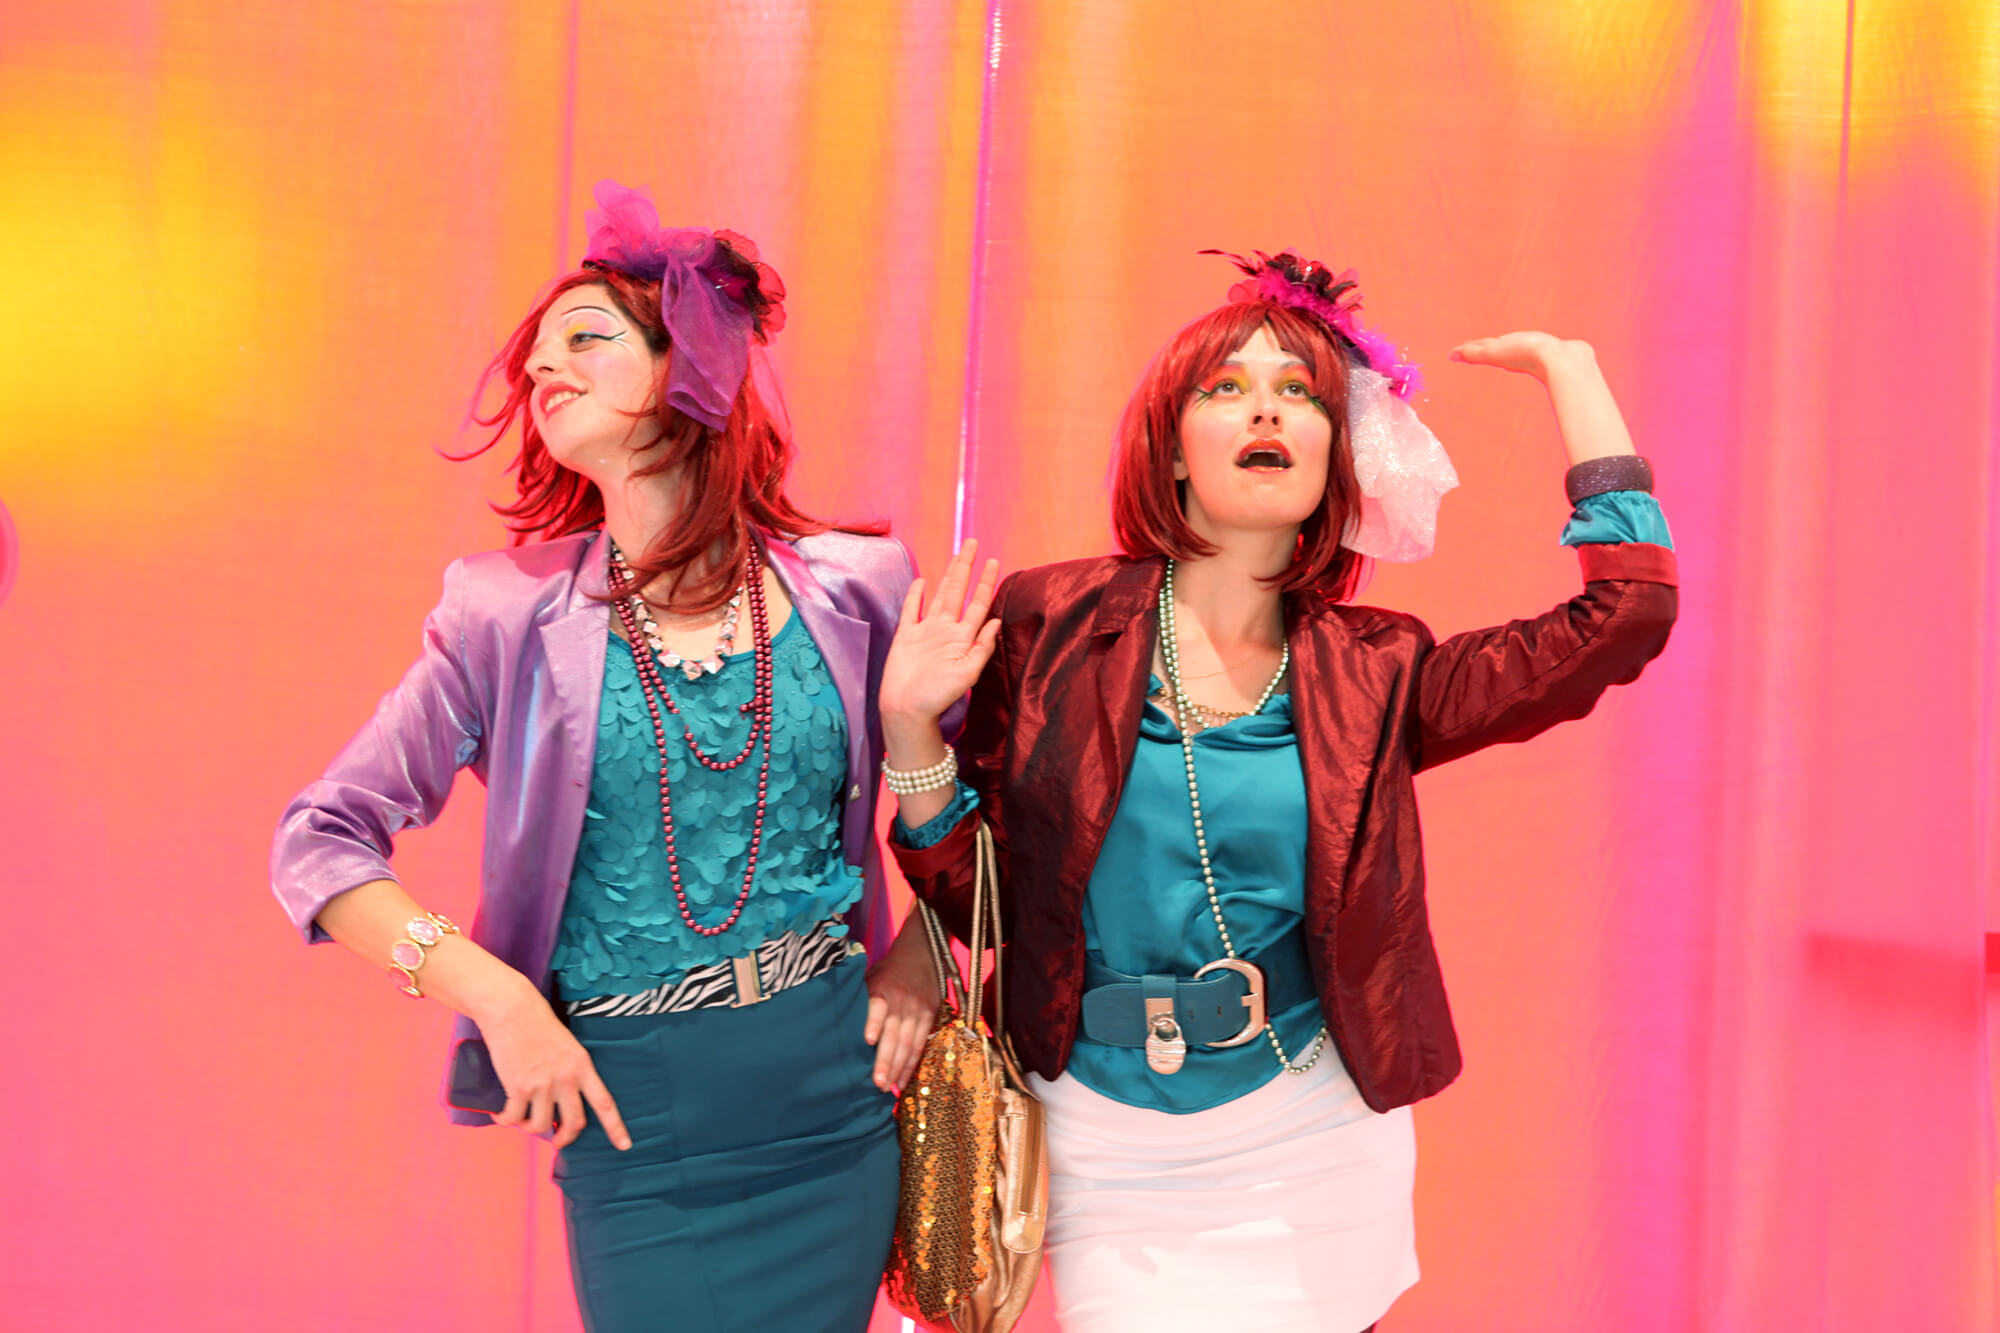 Tow girls dancing and having fun, pink and yellow background, a photo by Shalev Man